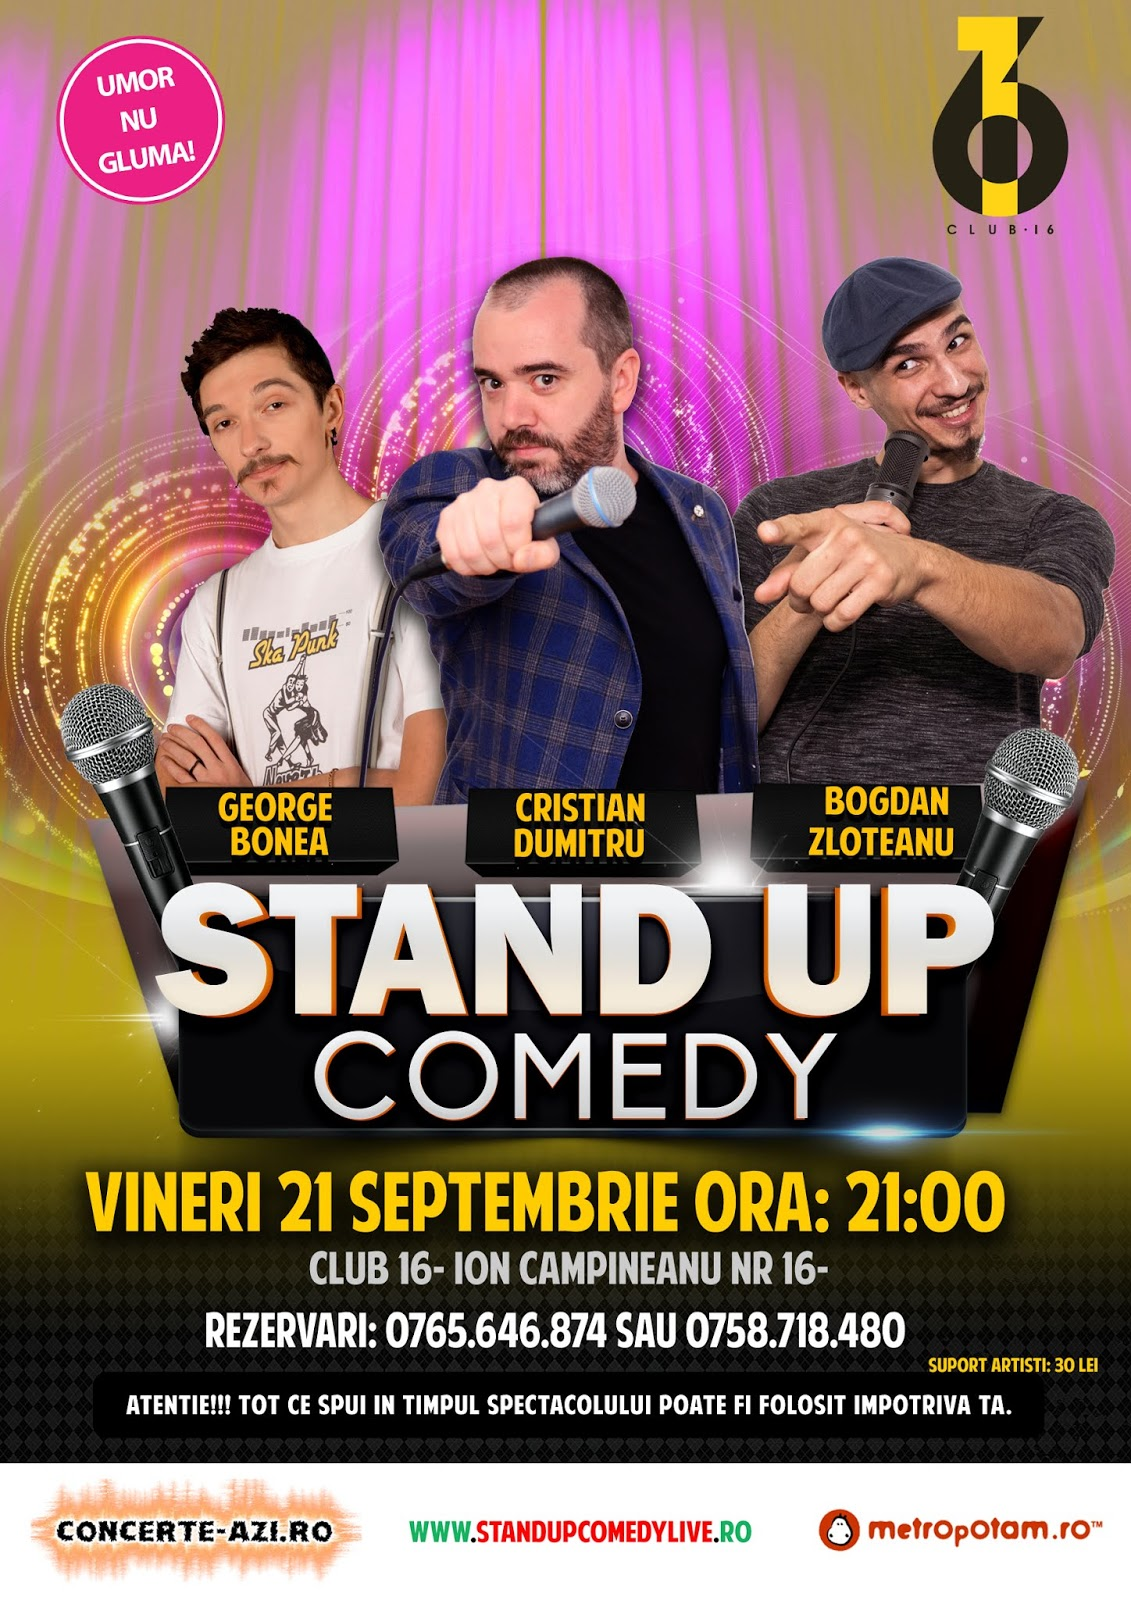 Stand-Up Comedy Bucuresti Vineri 21 Septembrie